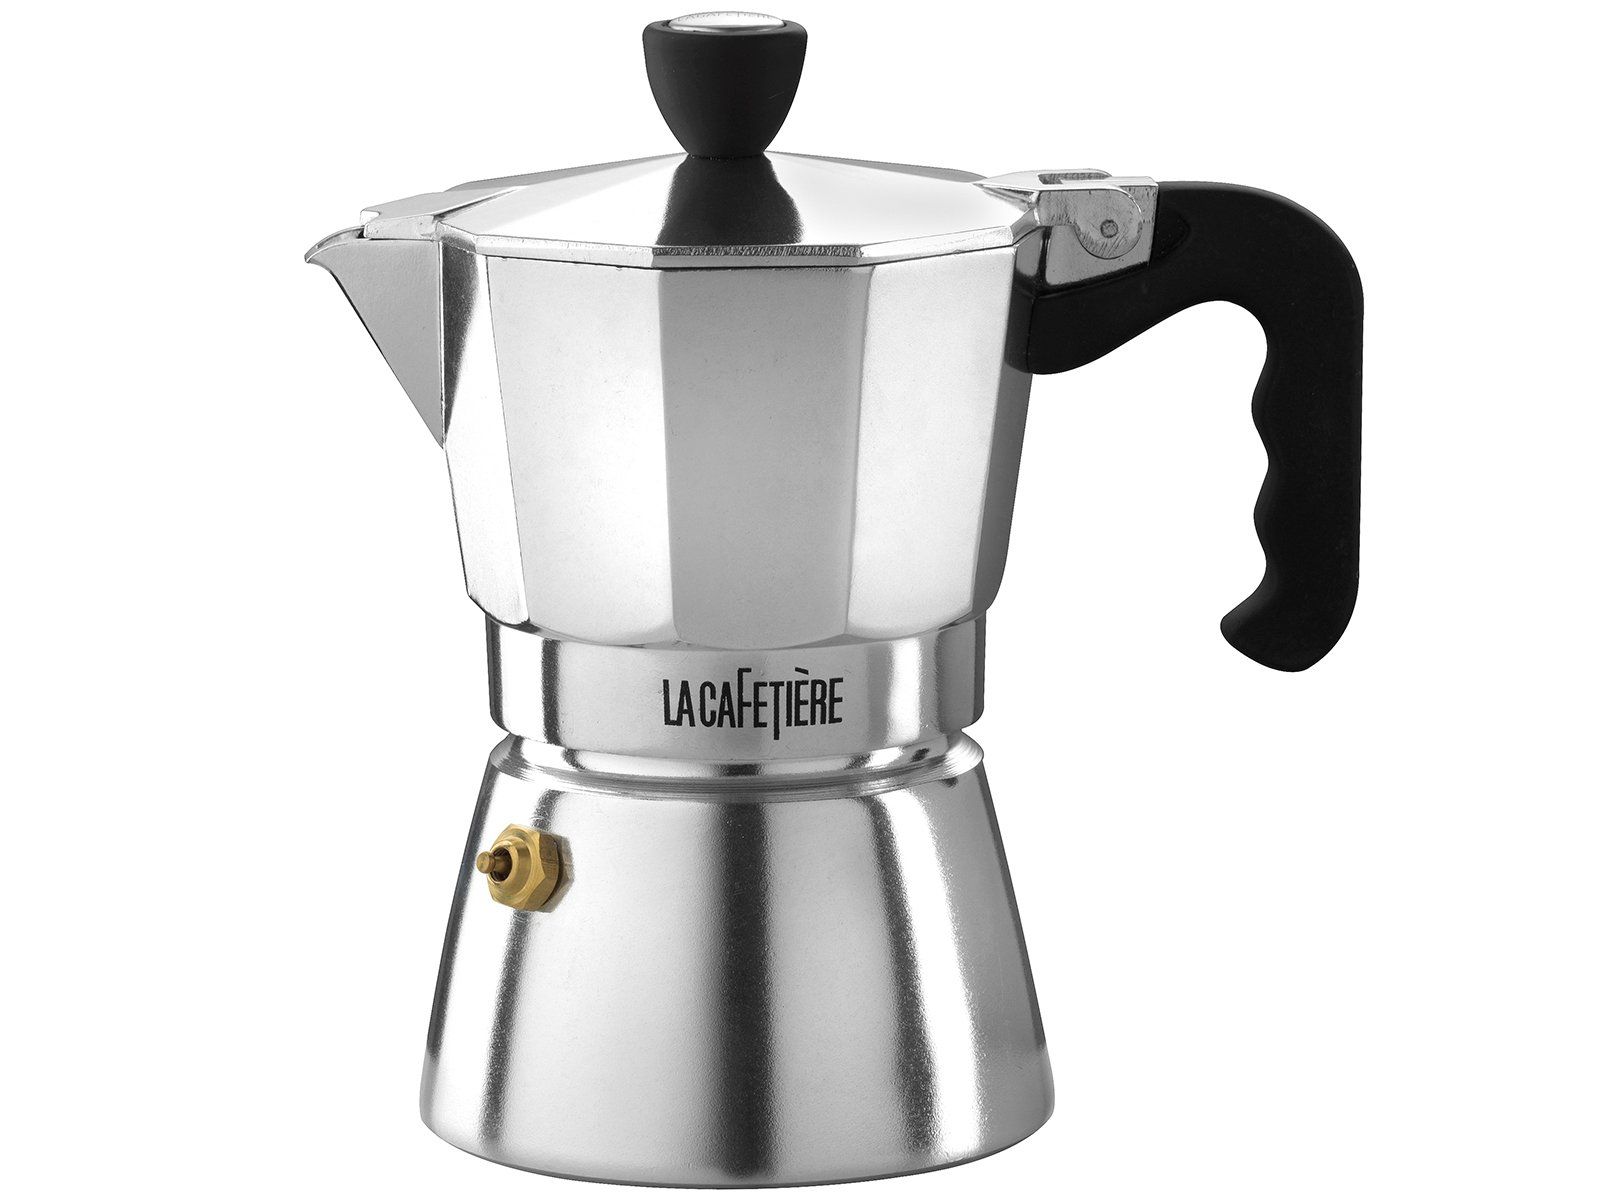 LaCafetiere Stovetop Espresso, Classic Polished, 3 Cup by La Cafetiere